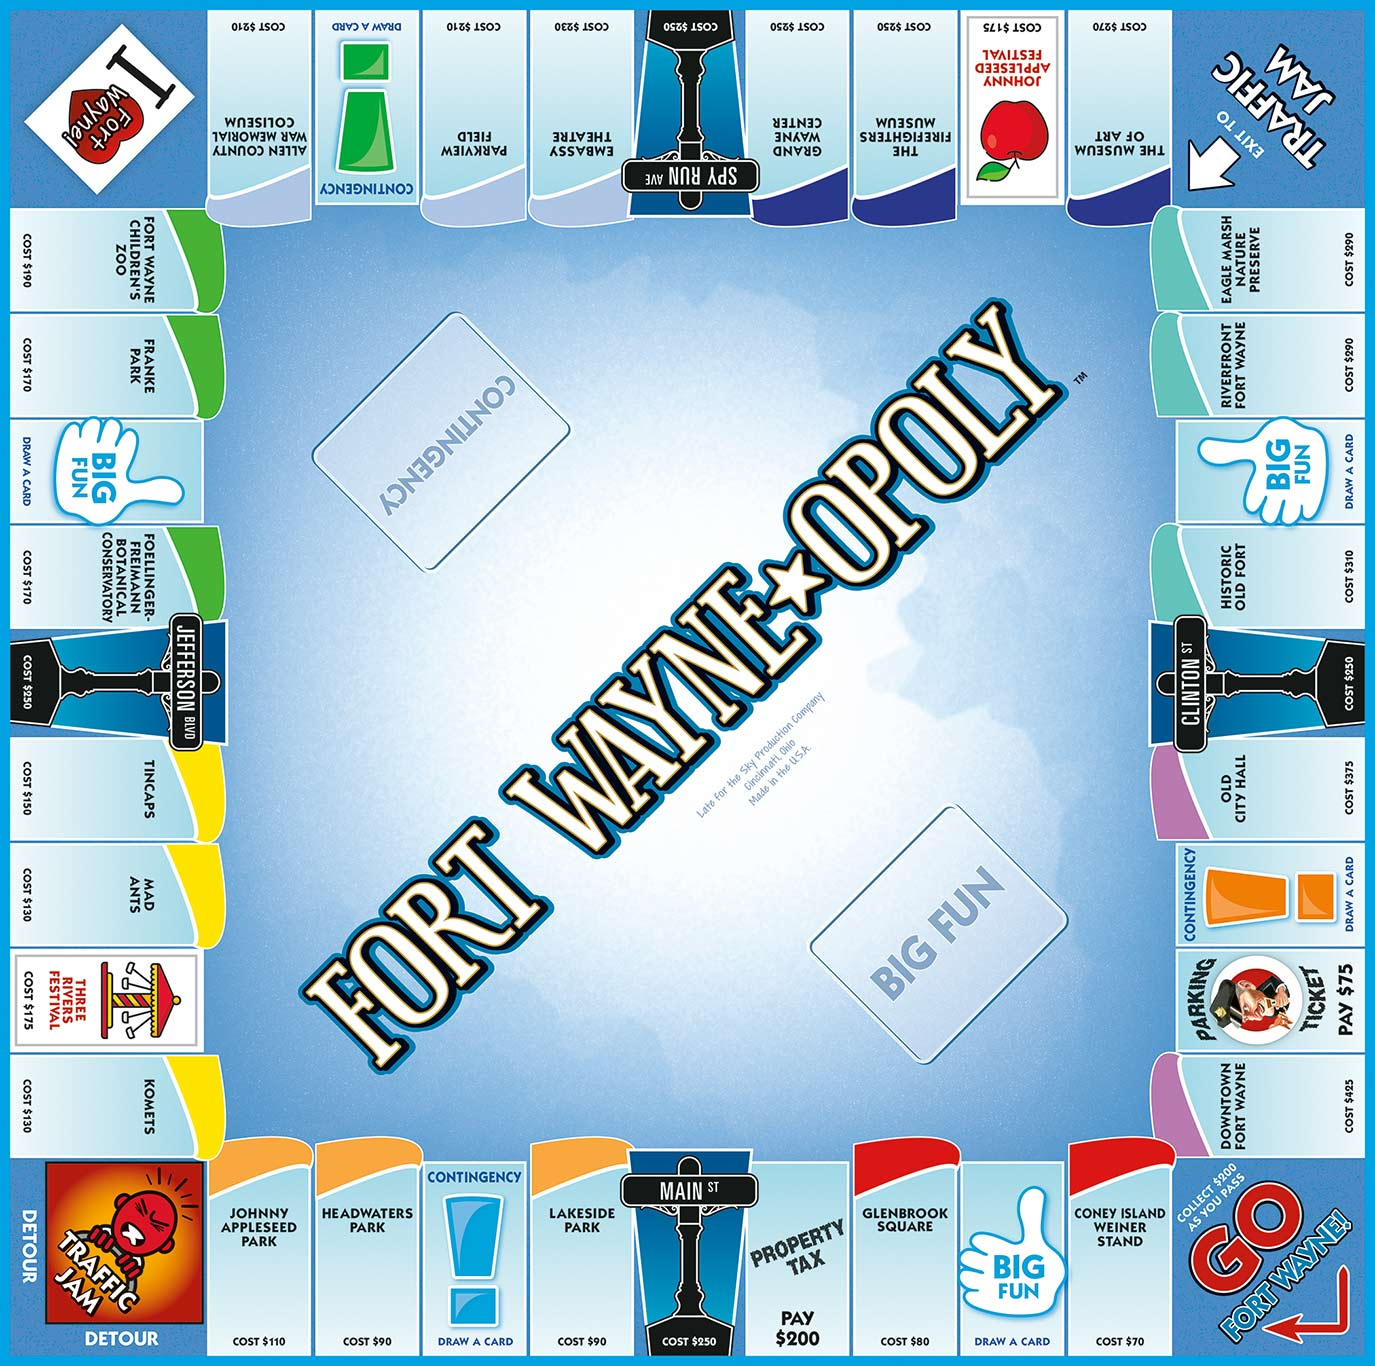 FT. WAYNE-OPOLY Board Game